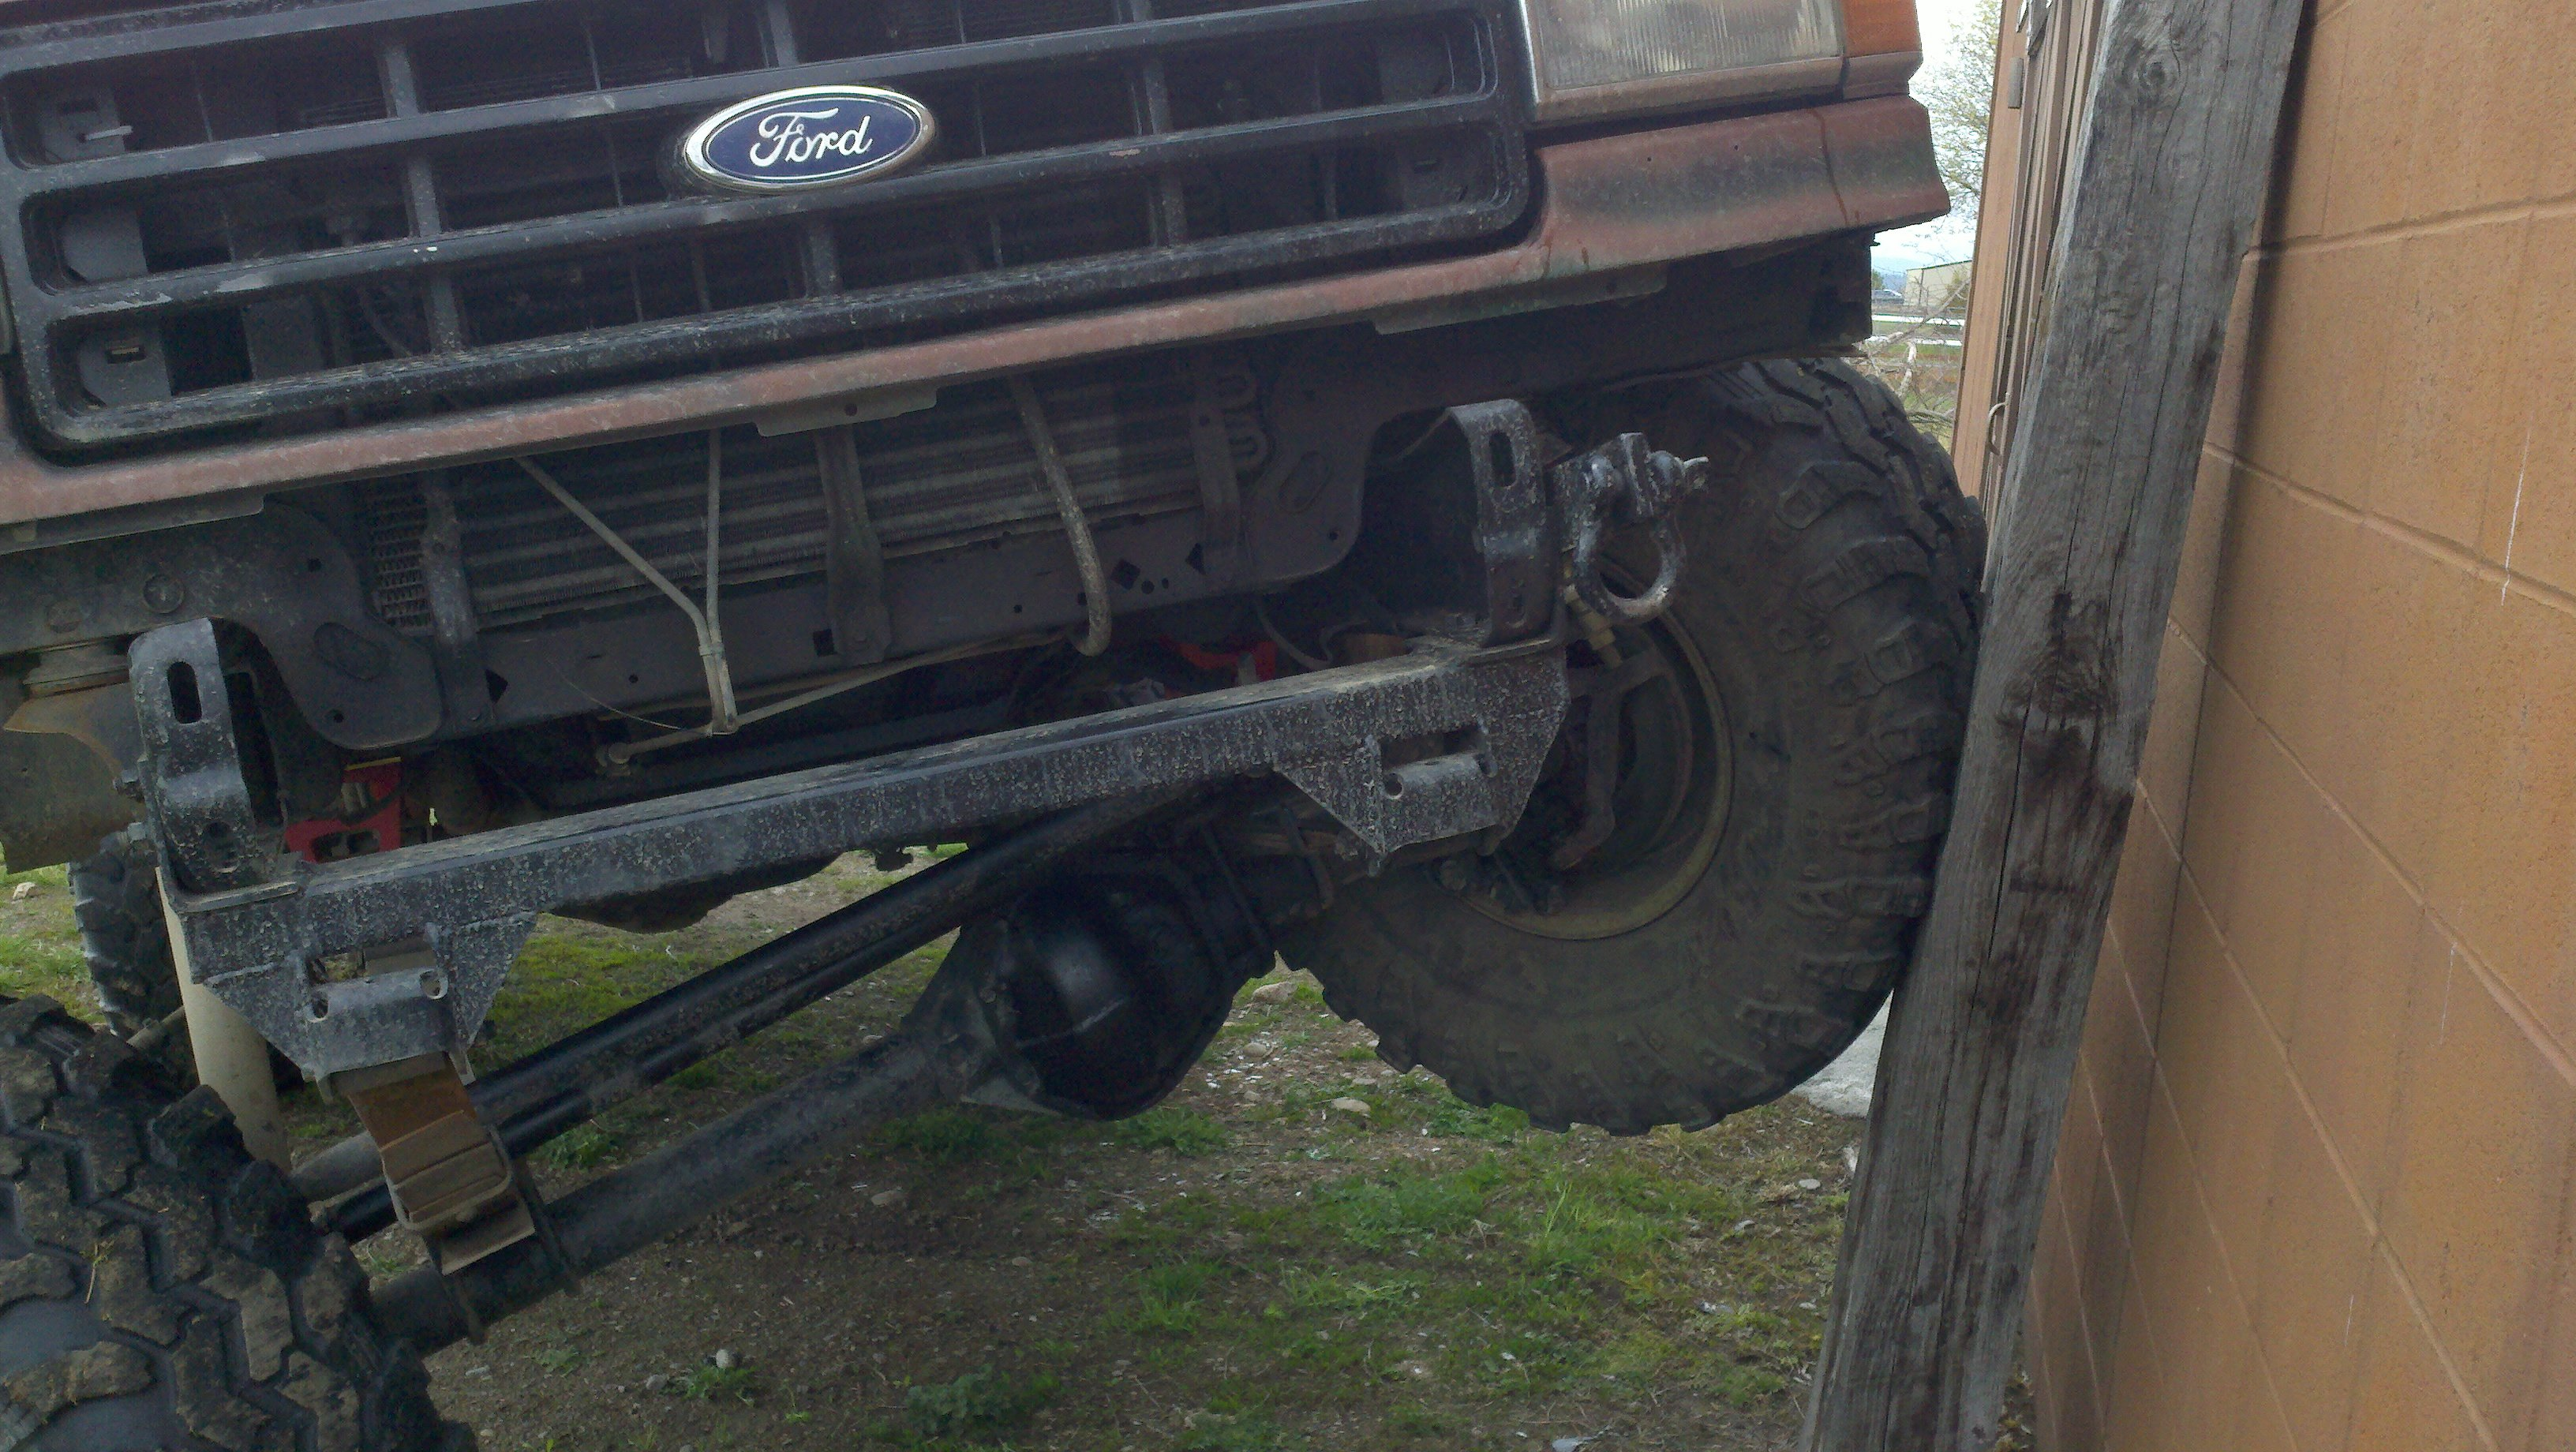 From 2wd To 4wd The Forums 1970 Ford F 350 4x4 Cant Be Any Worse Than Doing A Solid Axle Swap On Later Ttb And Tib Trucks